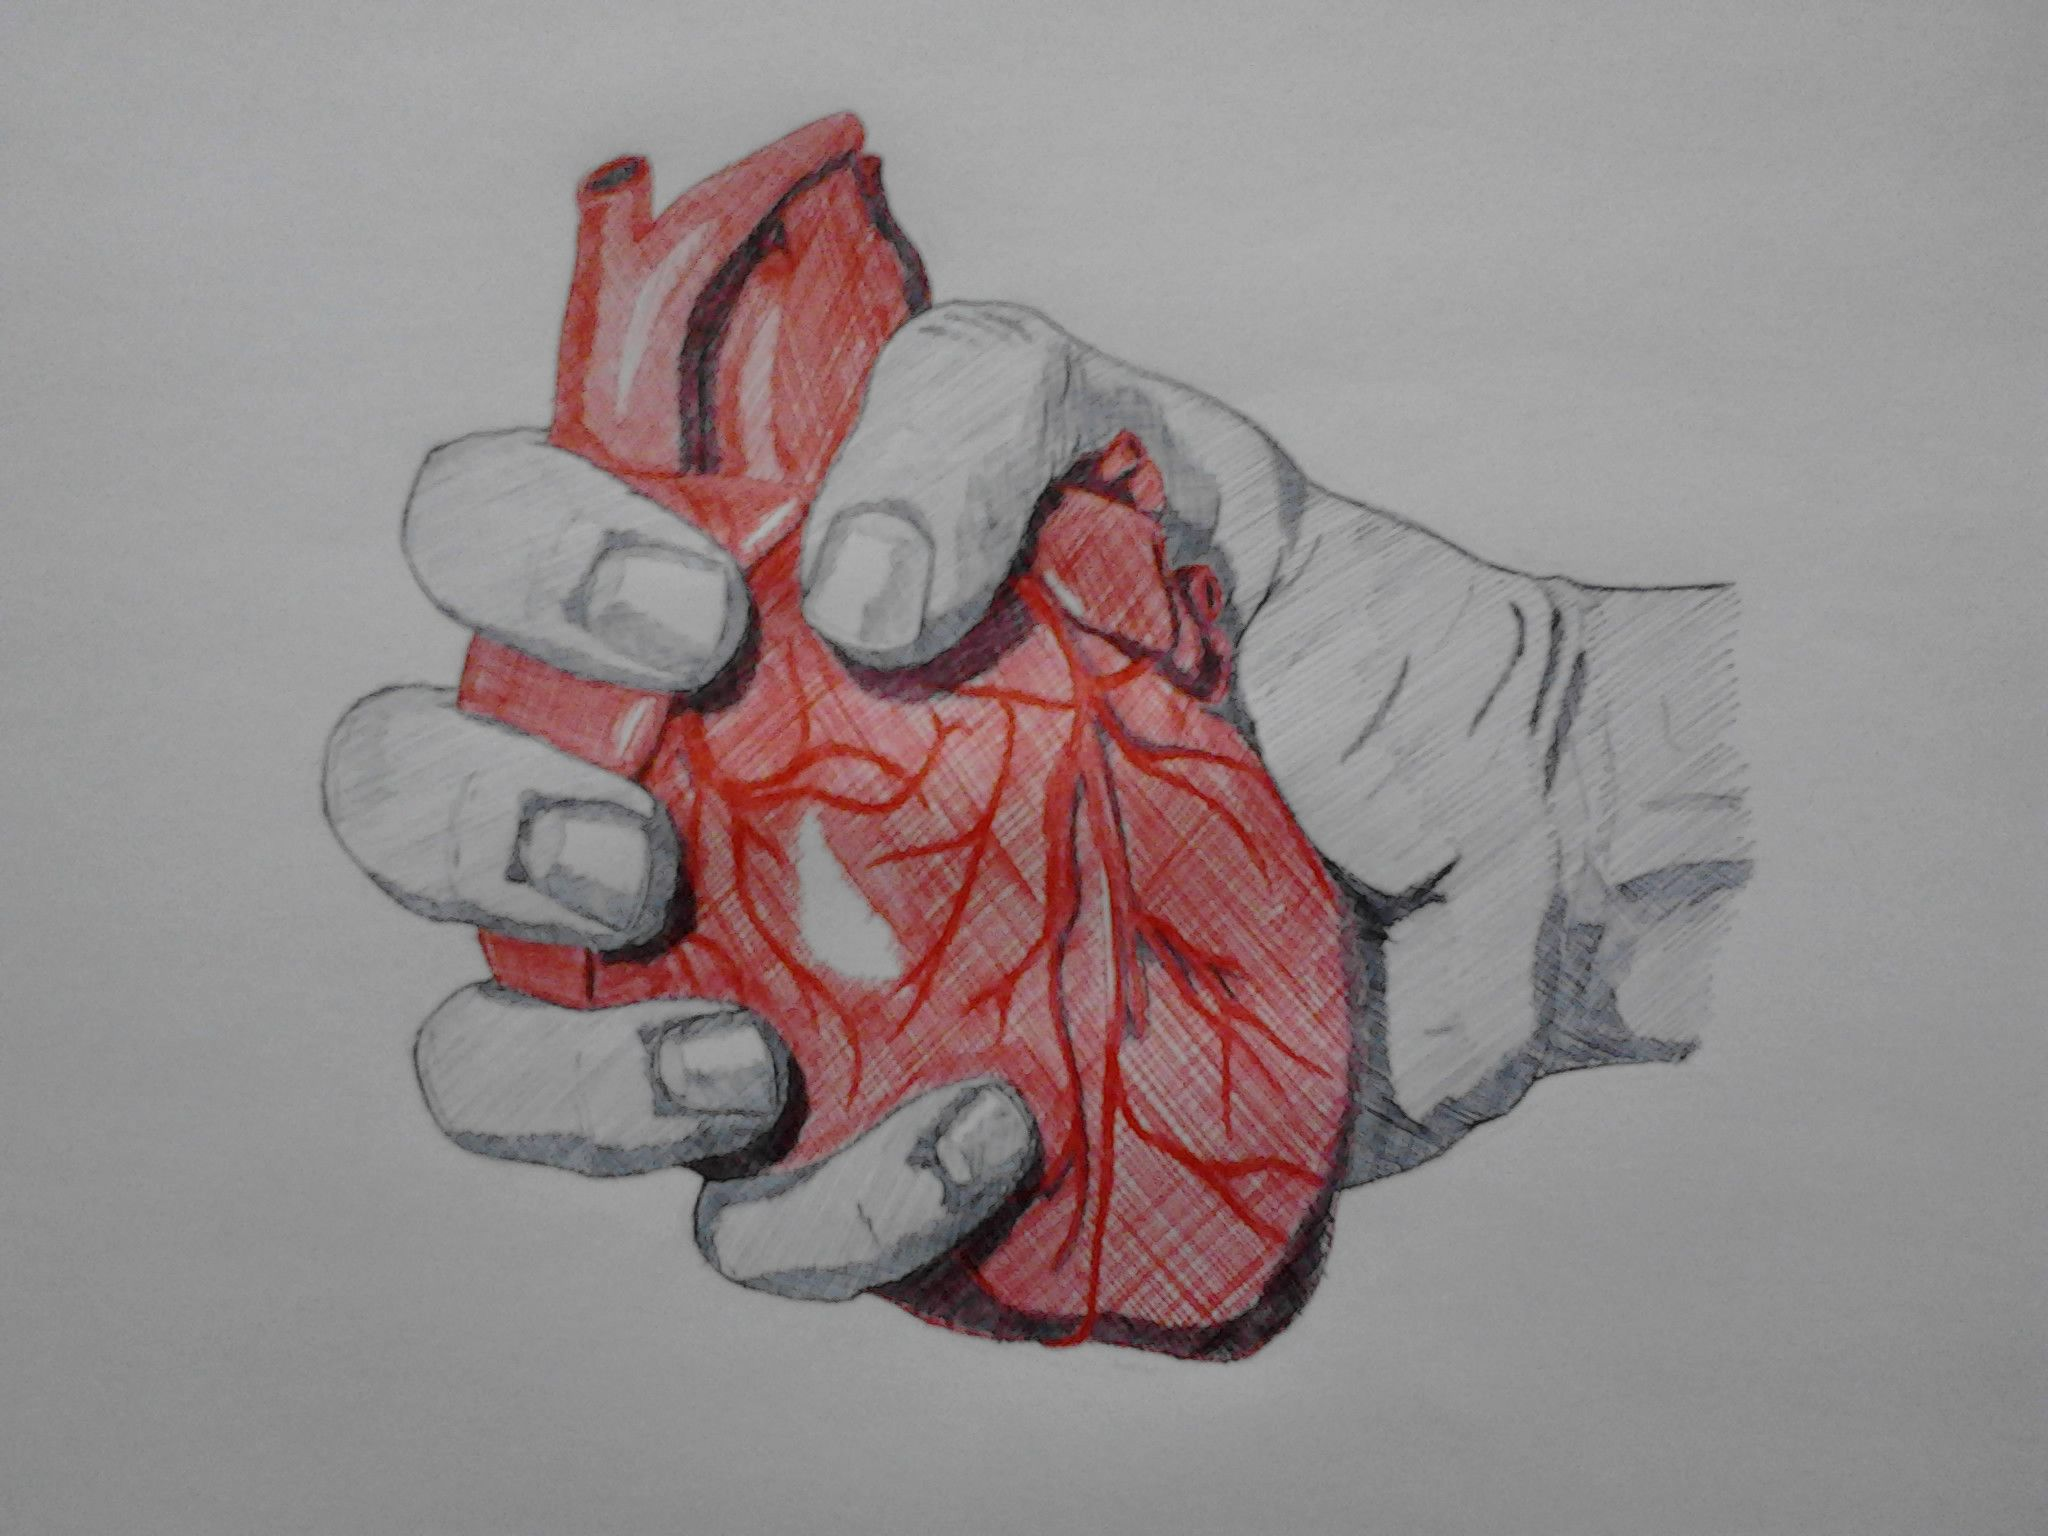 2048x1536 Images Of A Human Hand Sketch